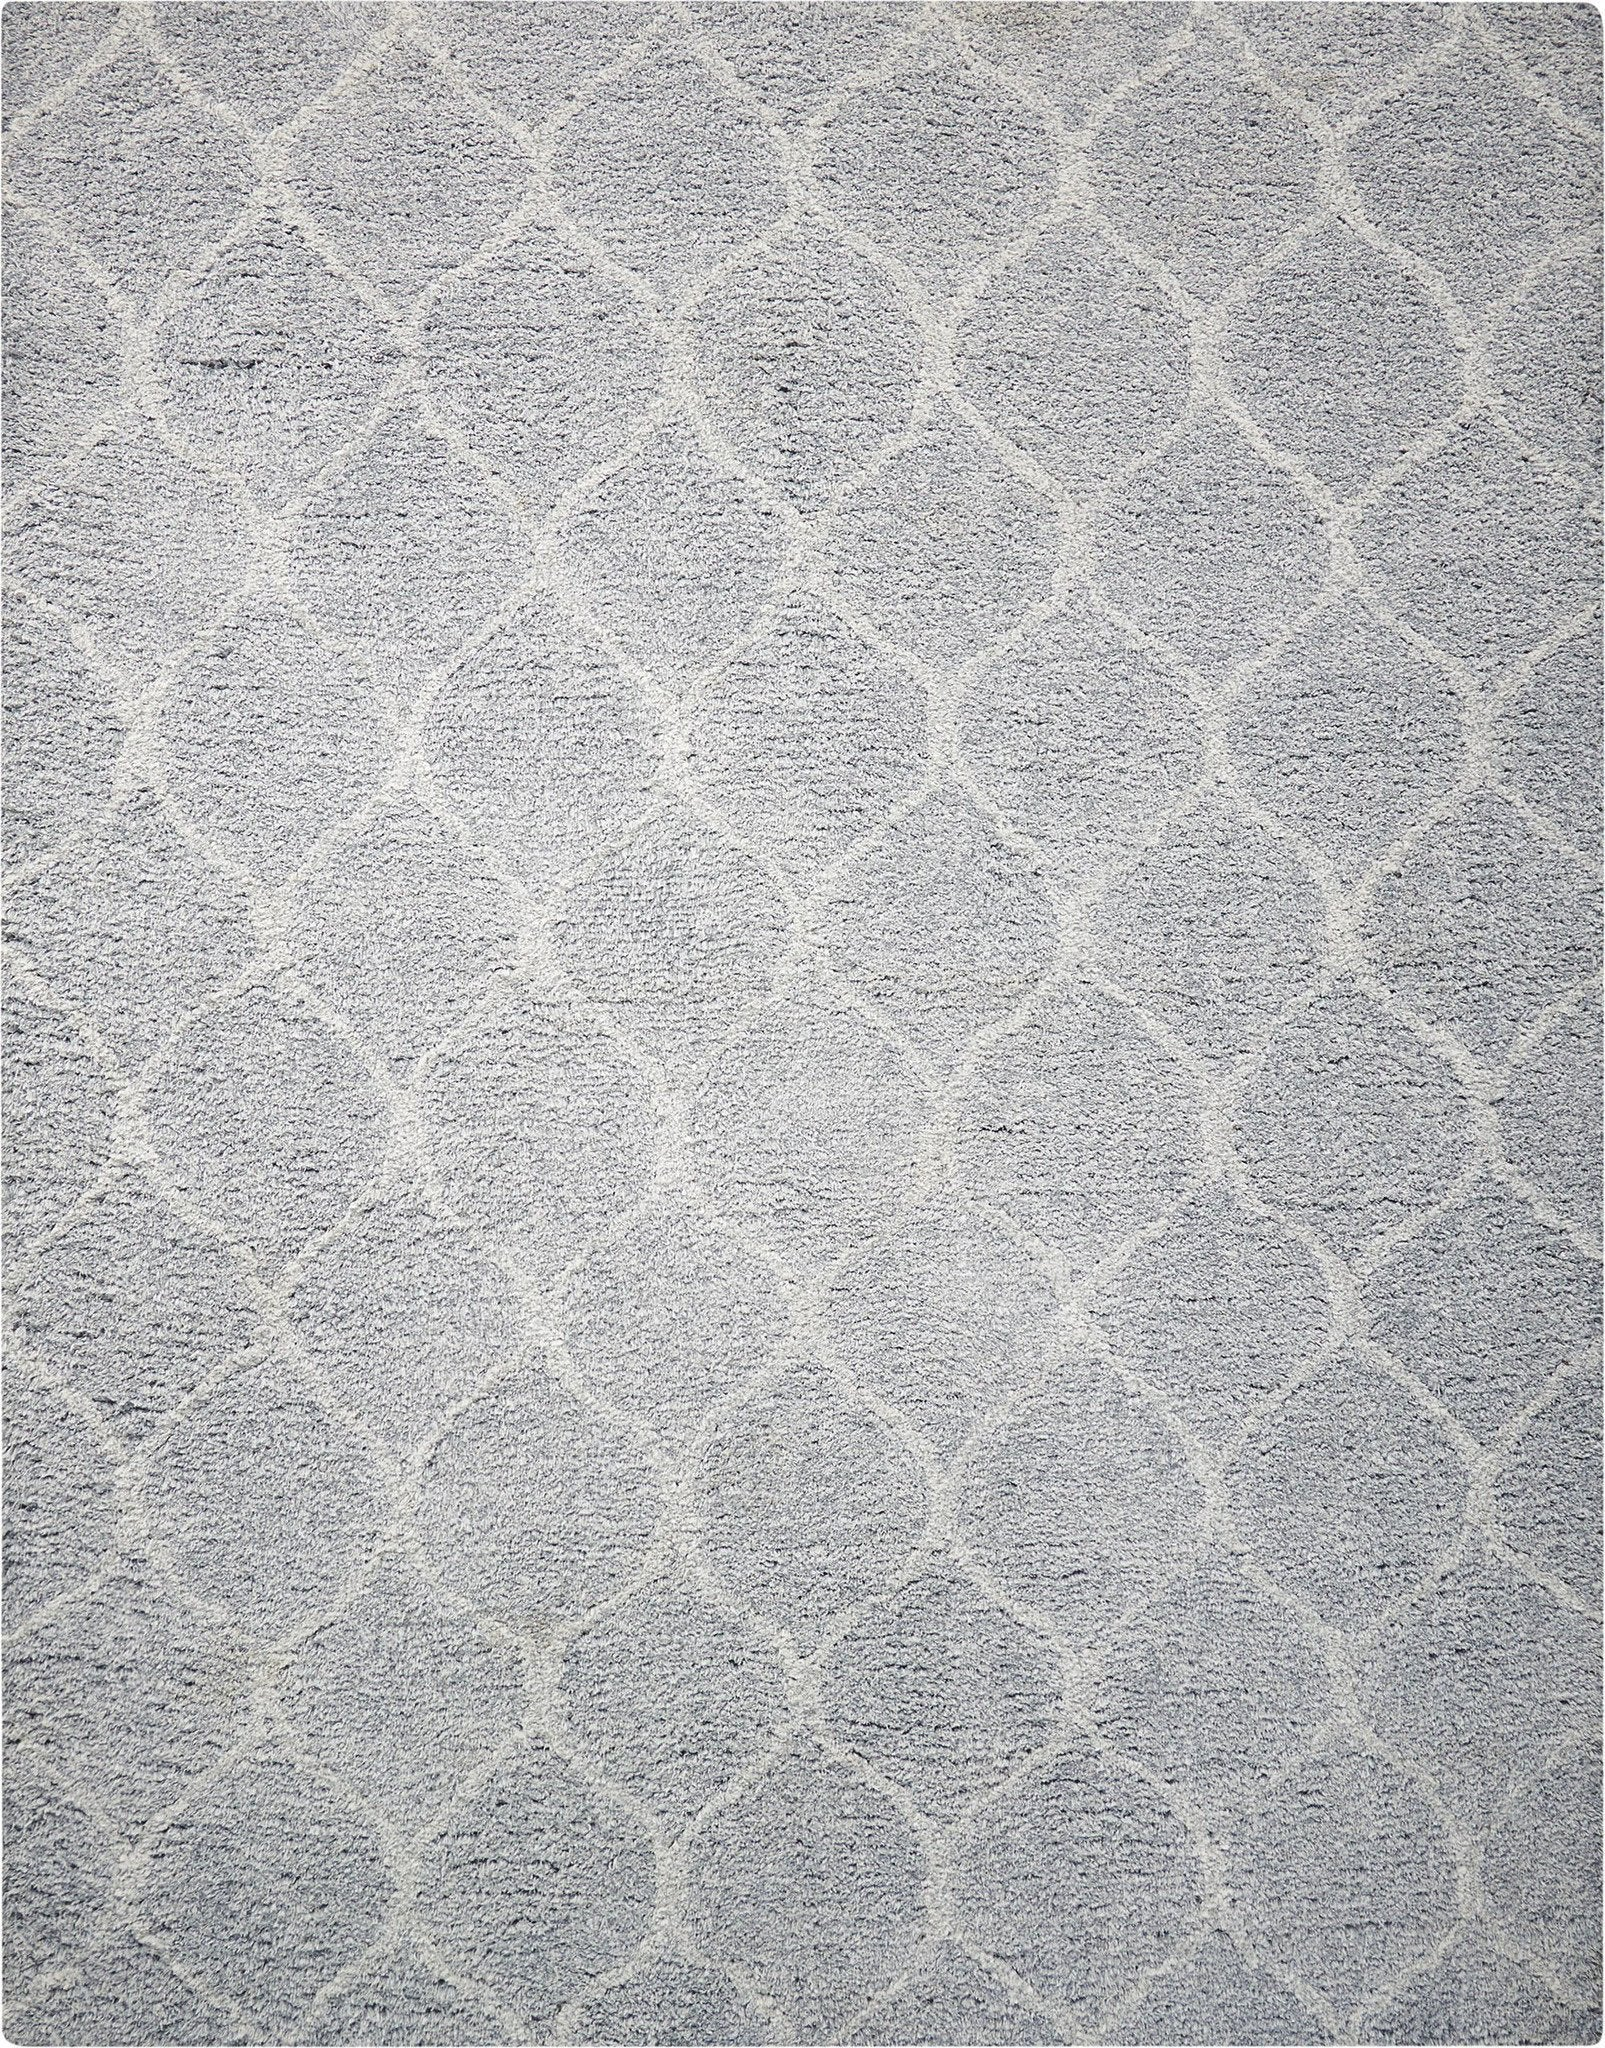 "Galway Light Grey Shag Area Rug 7'6"" x 9'6"" Rugs Nourison"